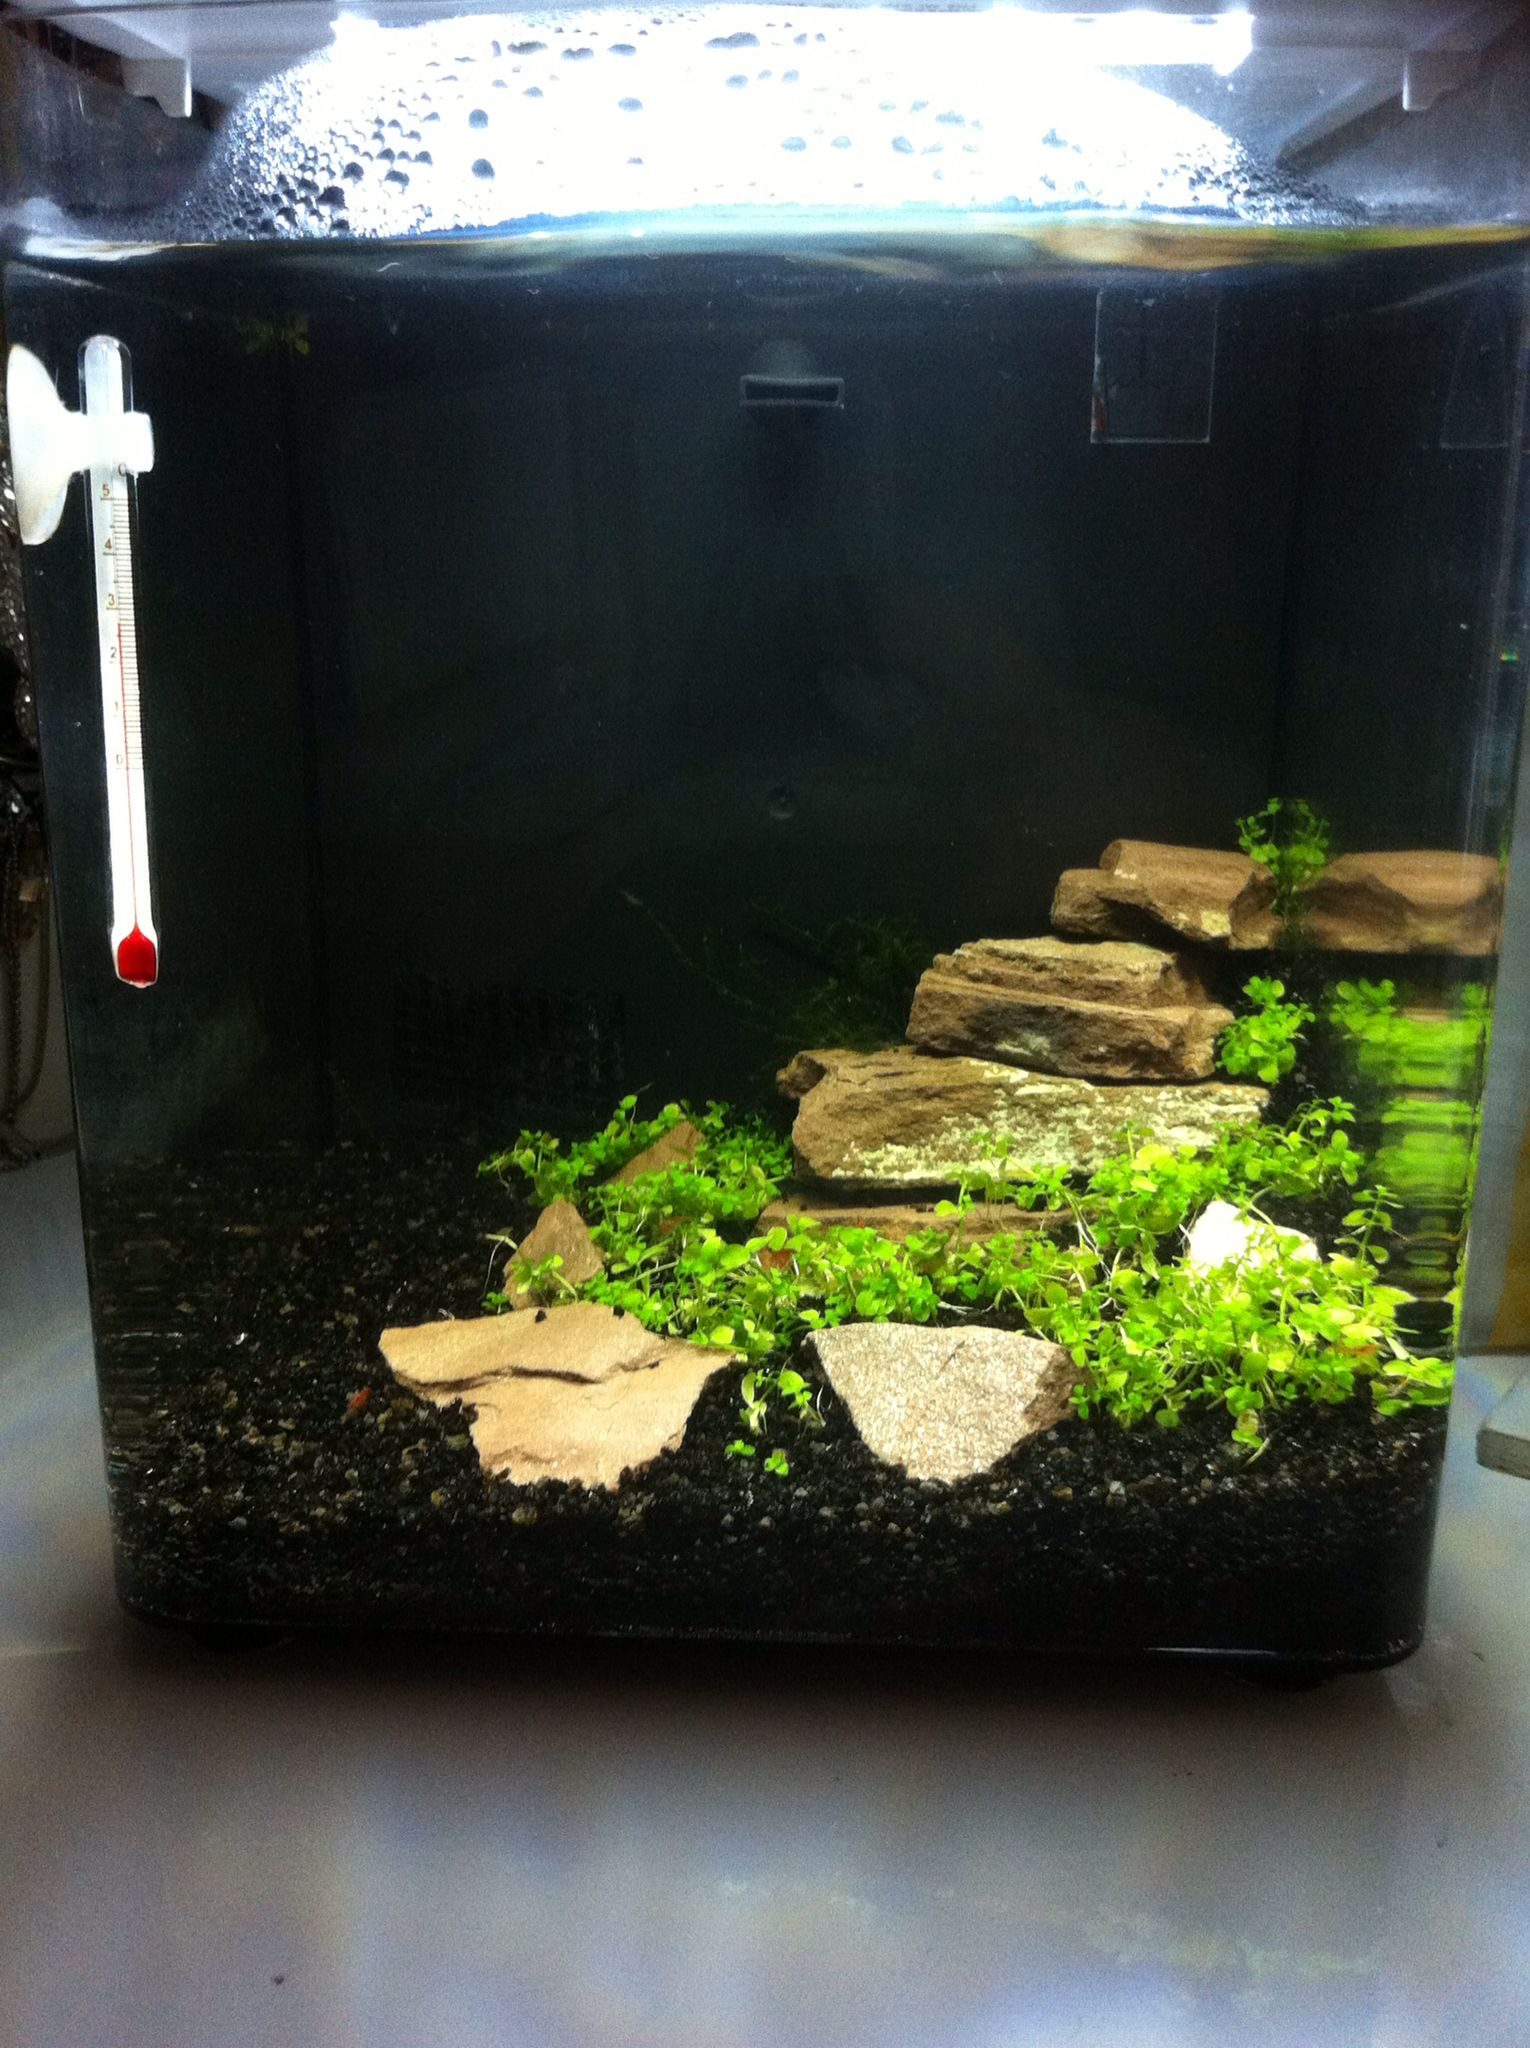 Fish aquarium price in pakistan - Aquascape For The Nano Aquarium With Red Shrimps Shrimps Aquariums Nano